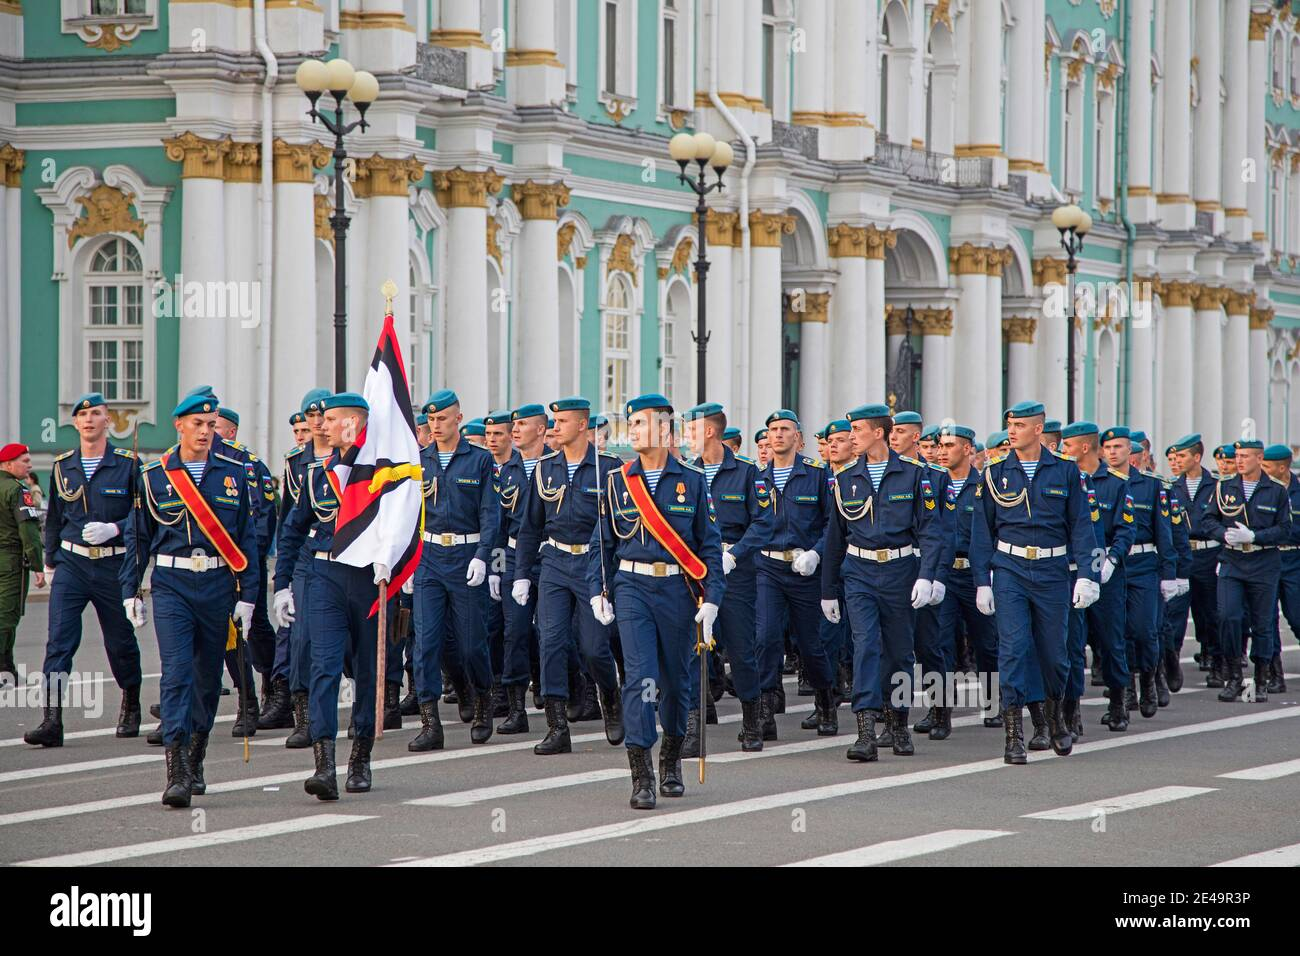 Military parade of Russian Airborne cadets wearing telnyashkas and blue berets marching in front of the Hermitage in Saint Petersburg, Russia Stock Photo